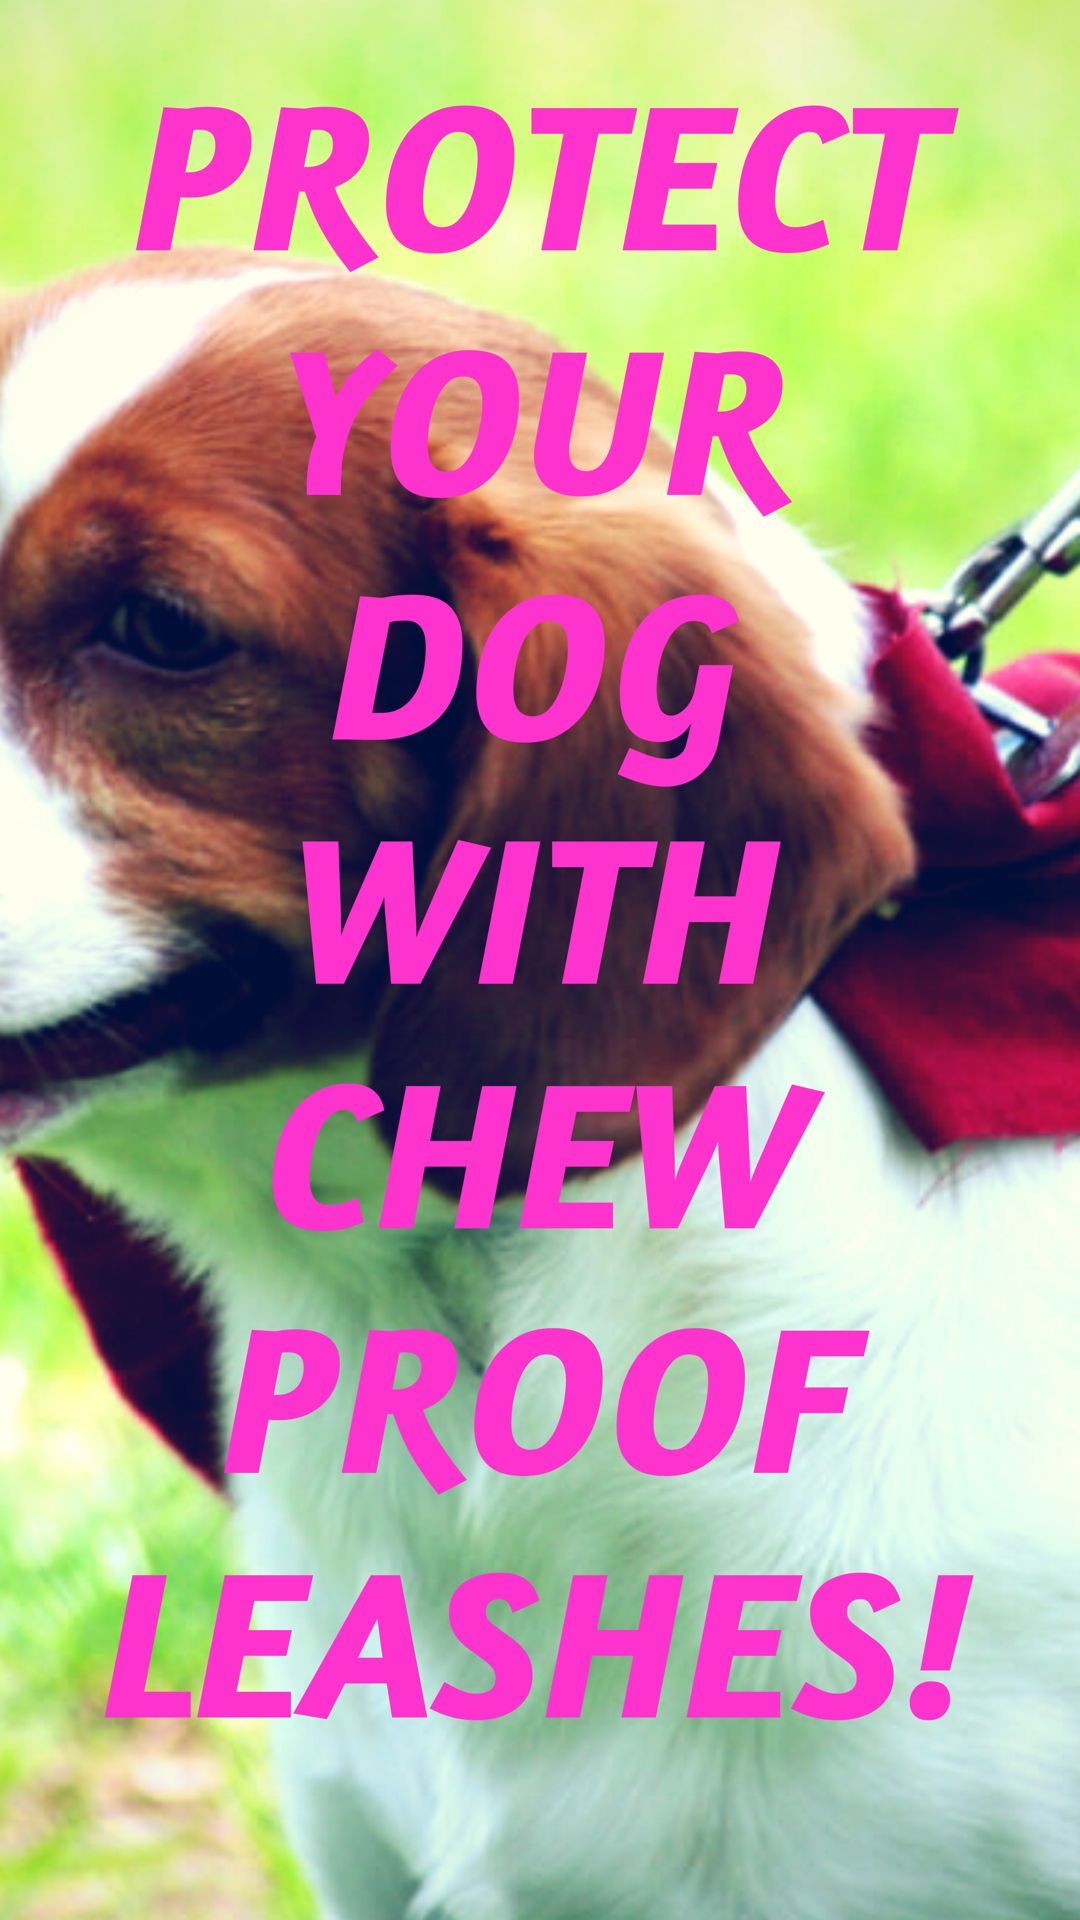 These are the 3 best chewproof dog leashes Dog leash